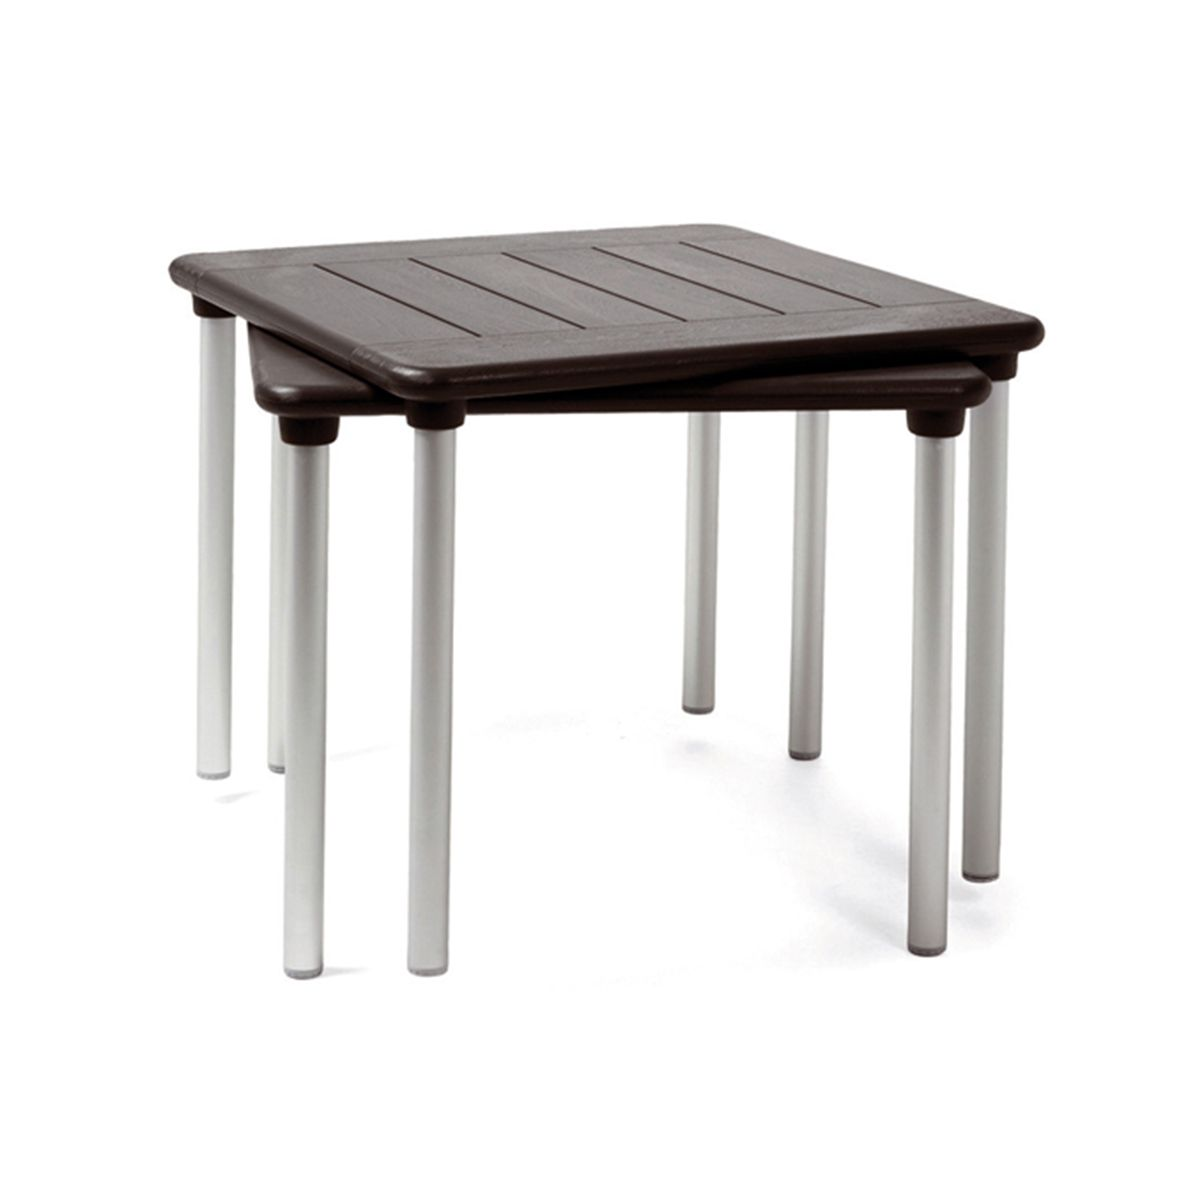 Table d appoint jardin terrasse maestrale nardi zendart design - Table de jardin design ...